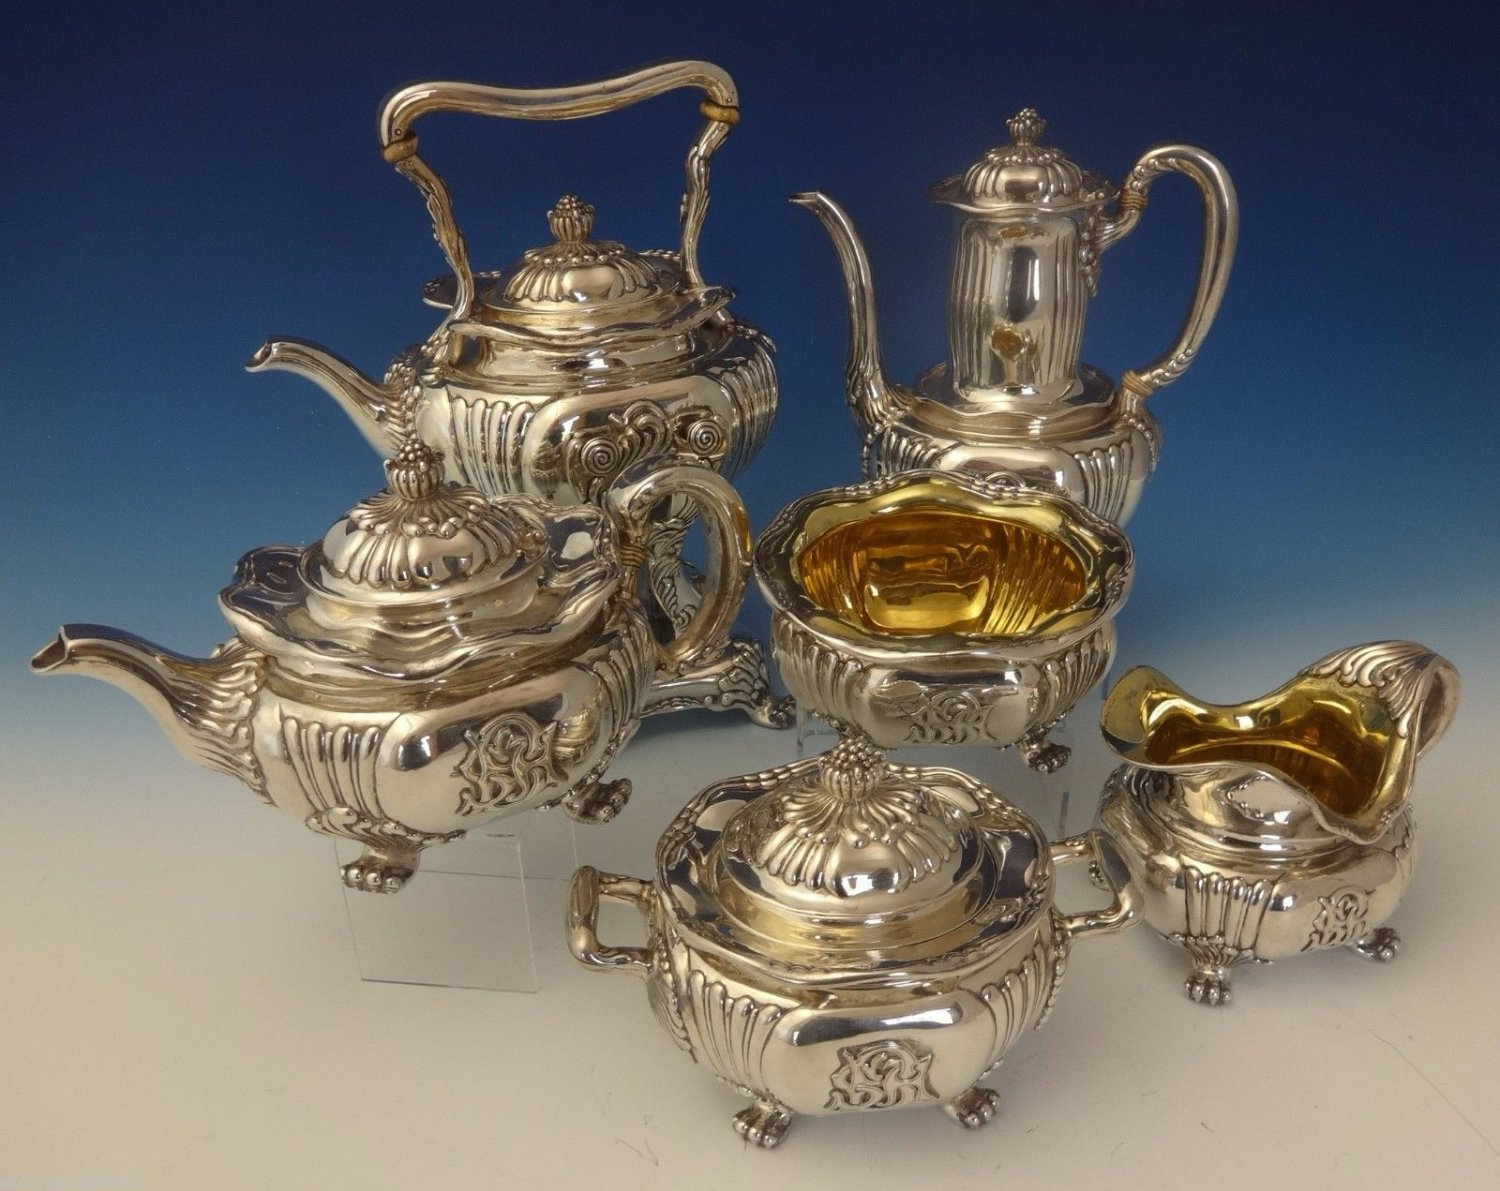 Tiffany & Co. Sterling Silver Tea Set w/Chrysanthemums 6pc One-Of-A-Kind #0157